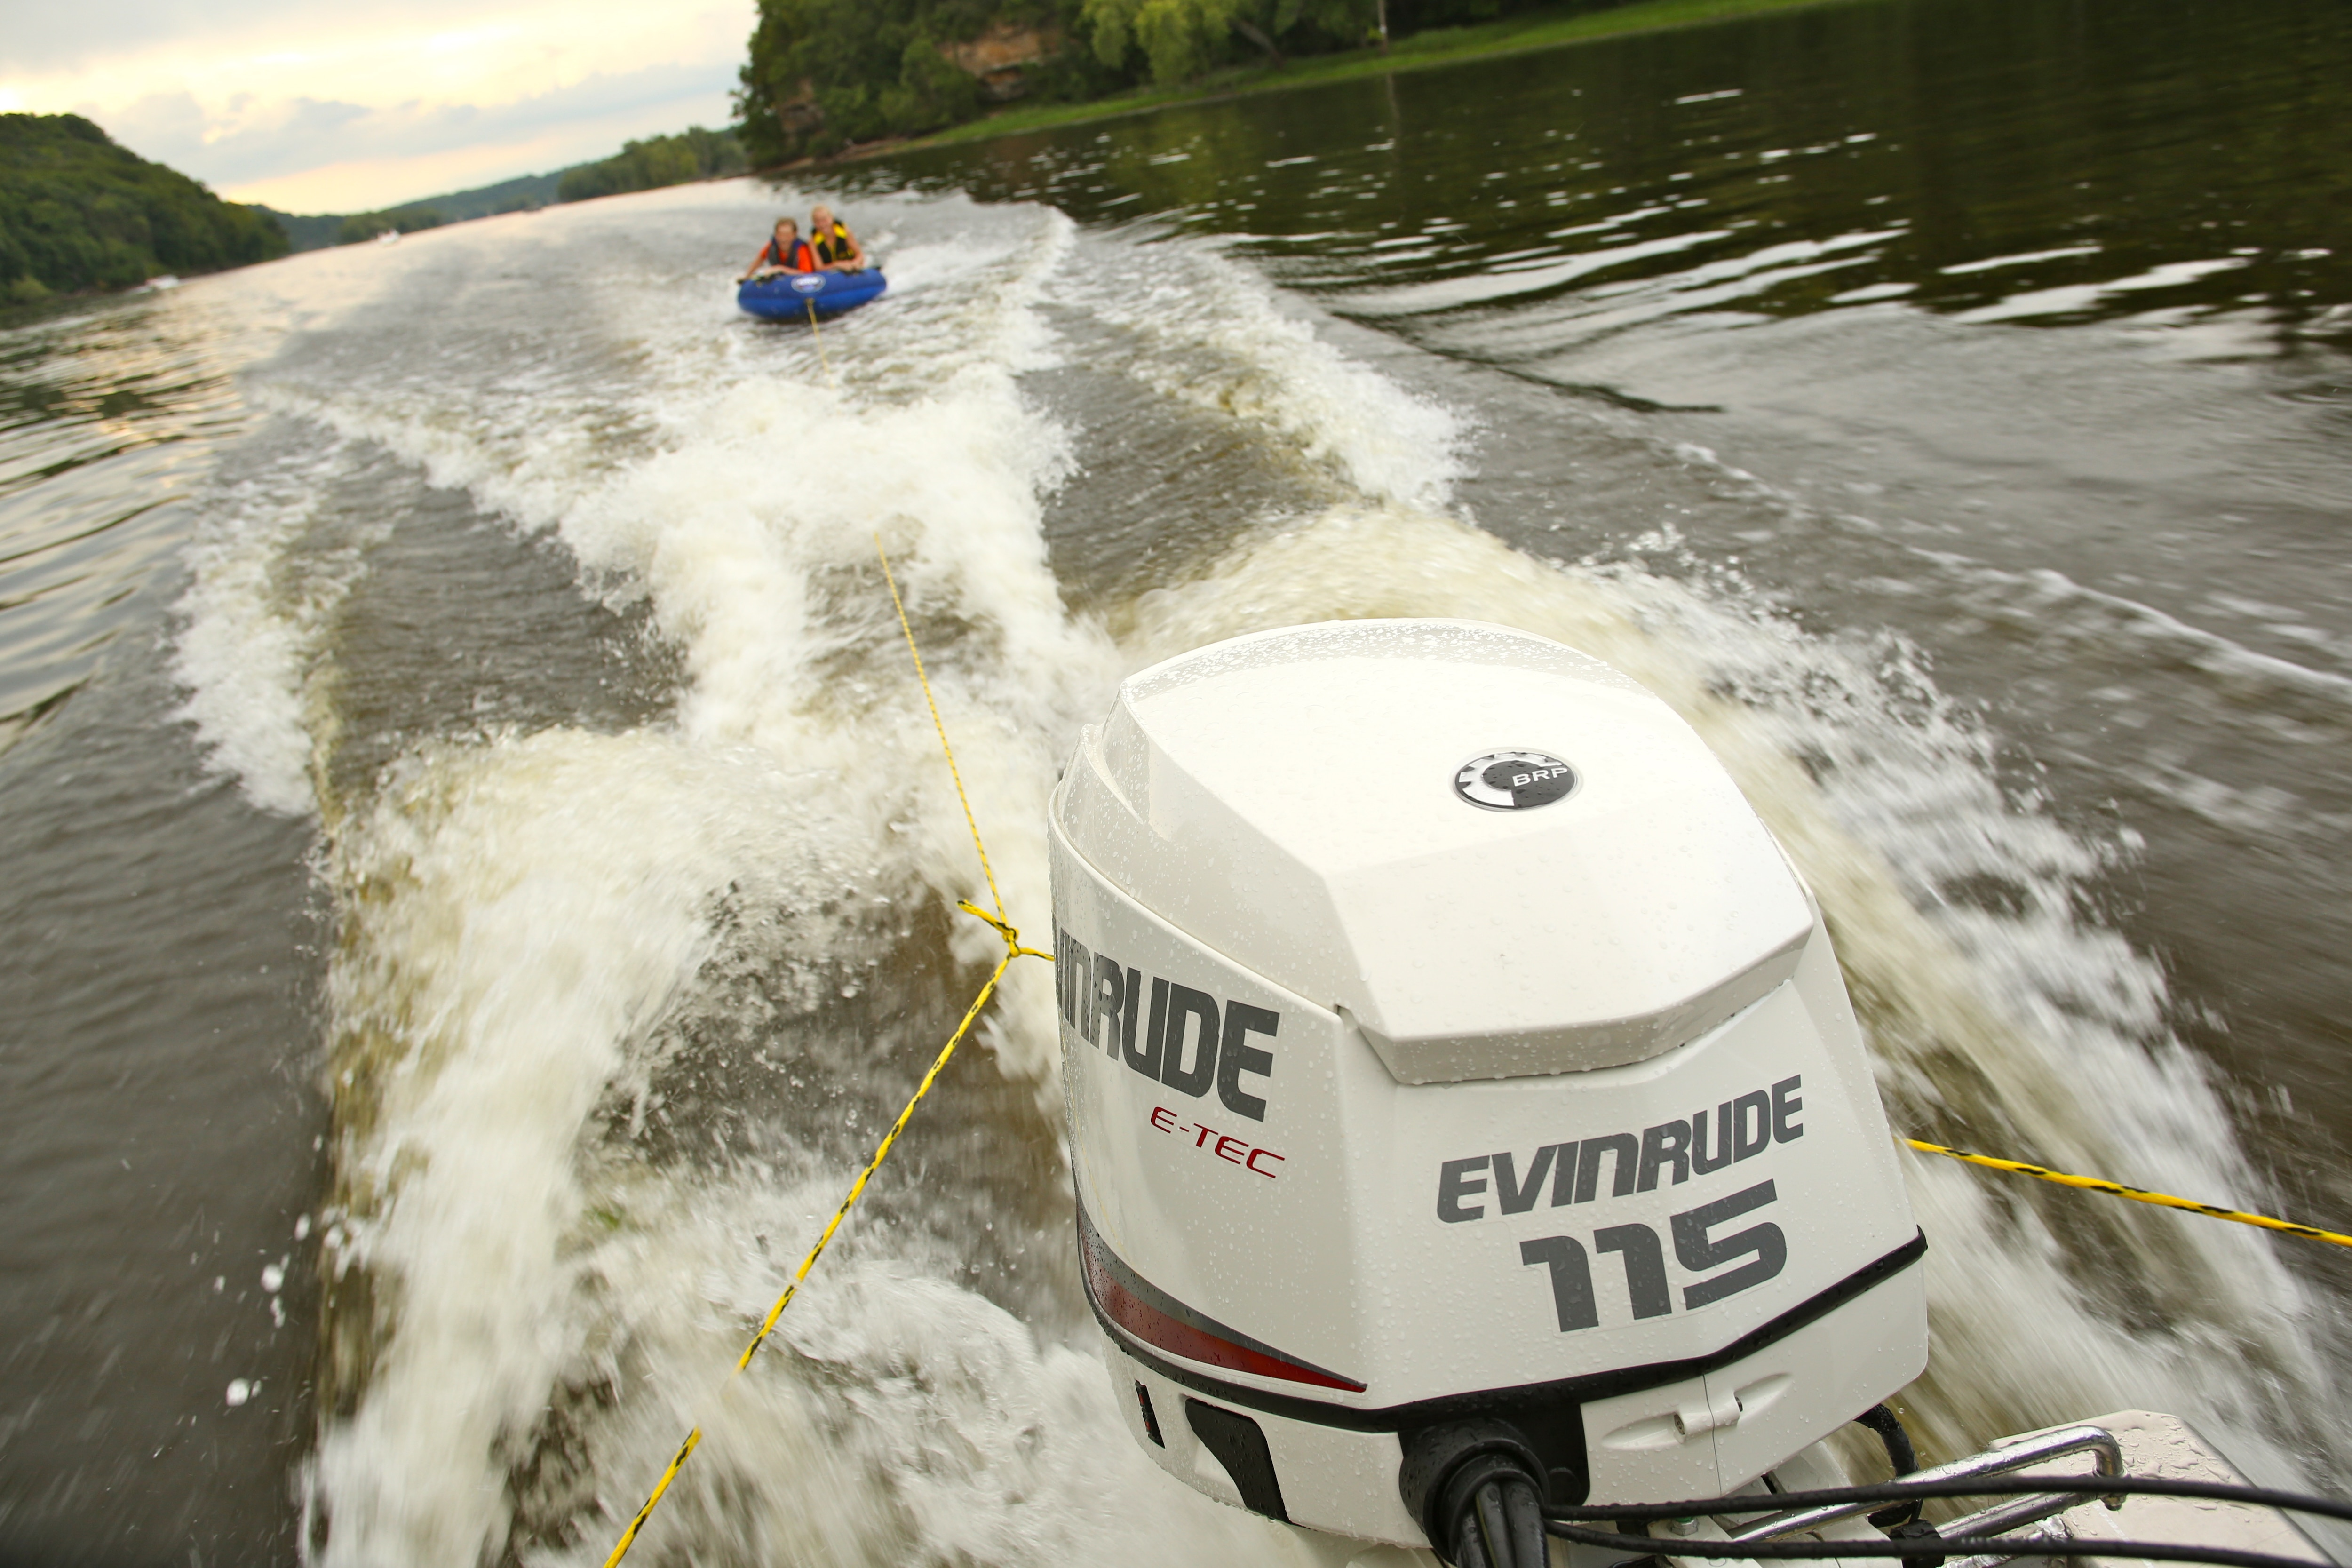 Close-up of an Evinrude 115 boat motor